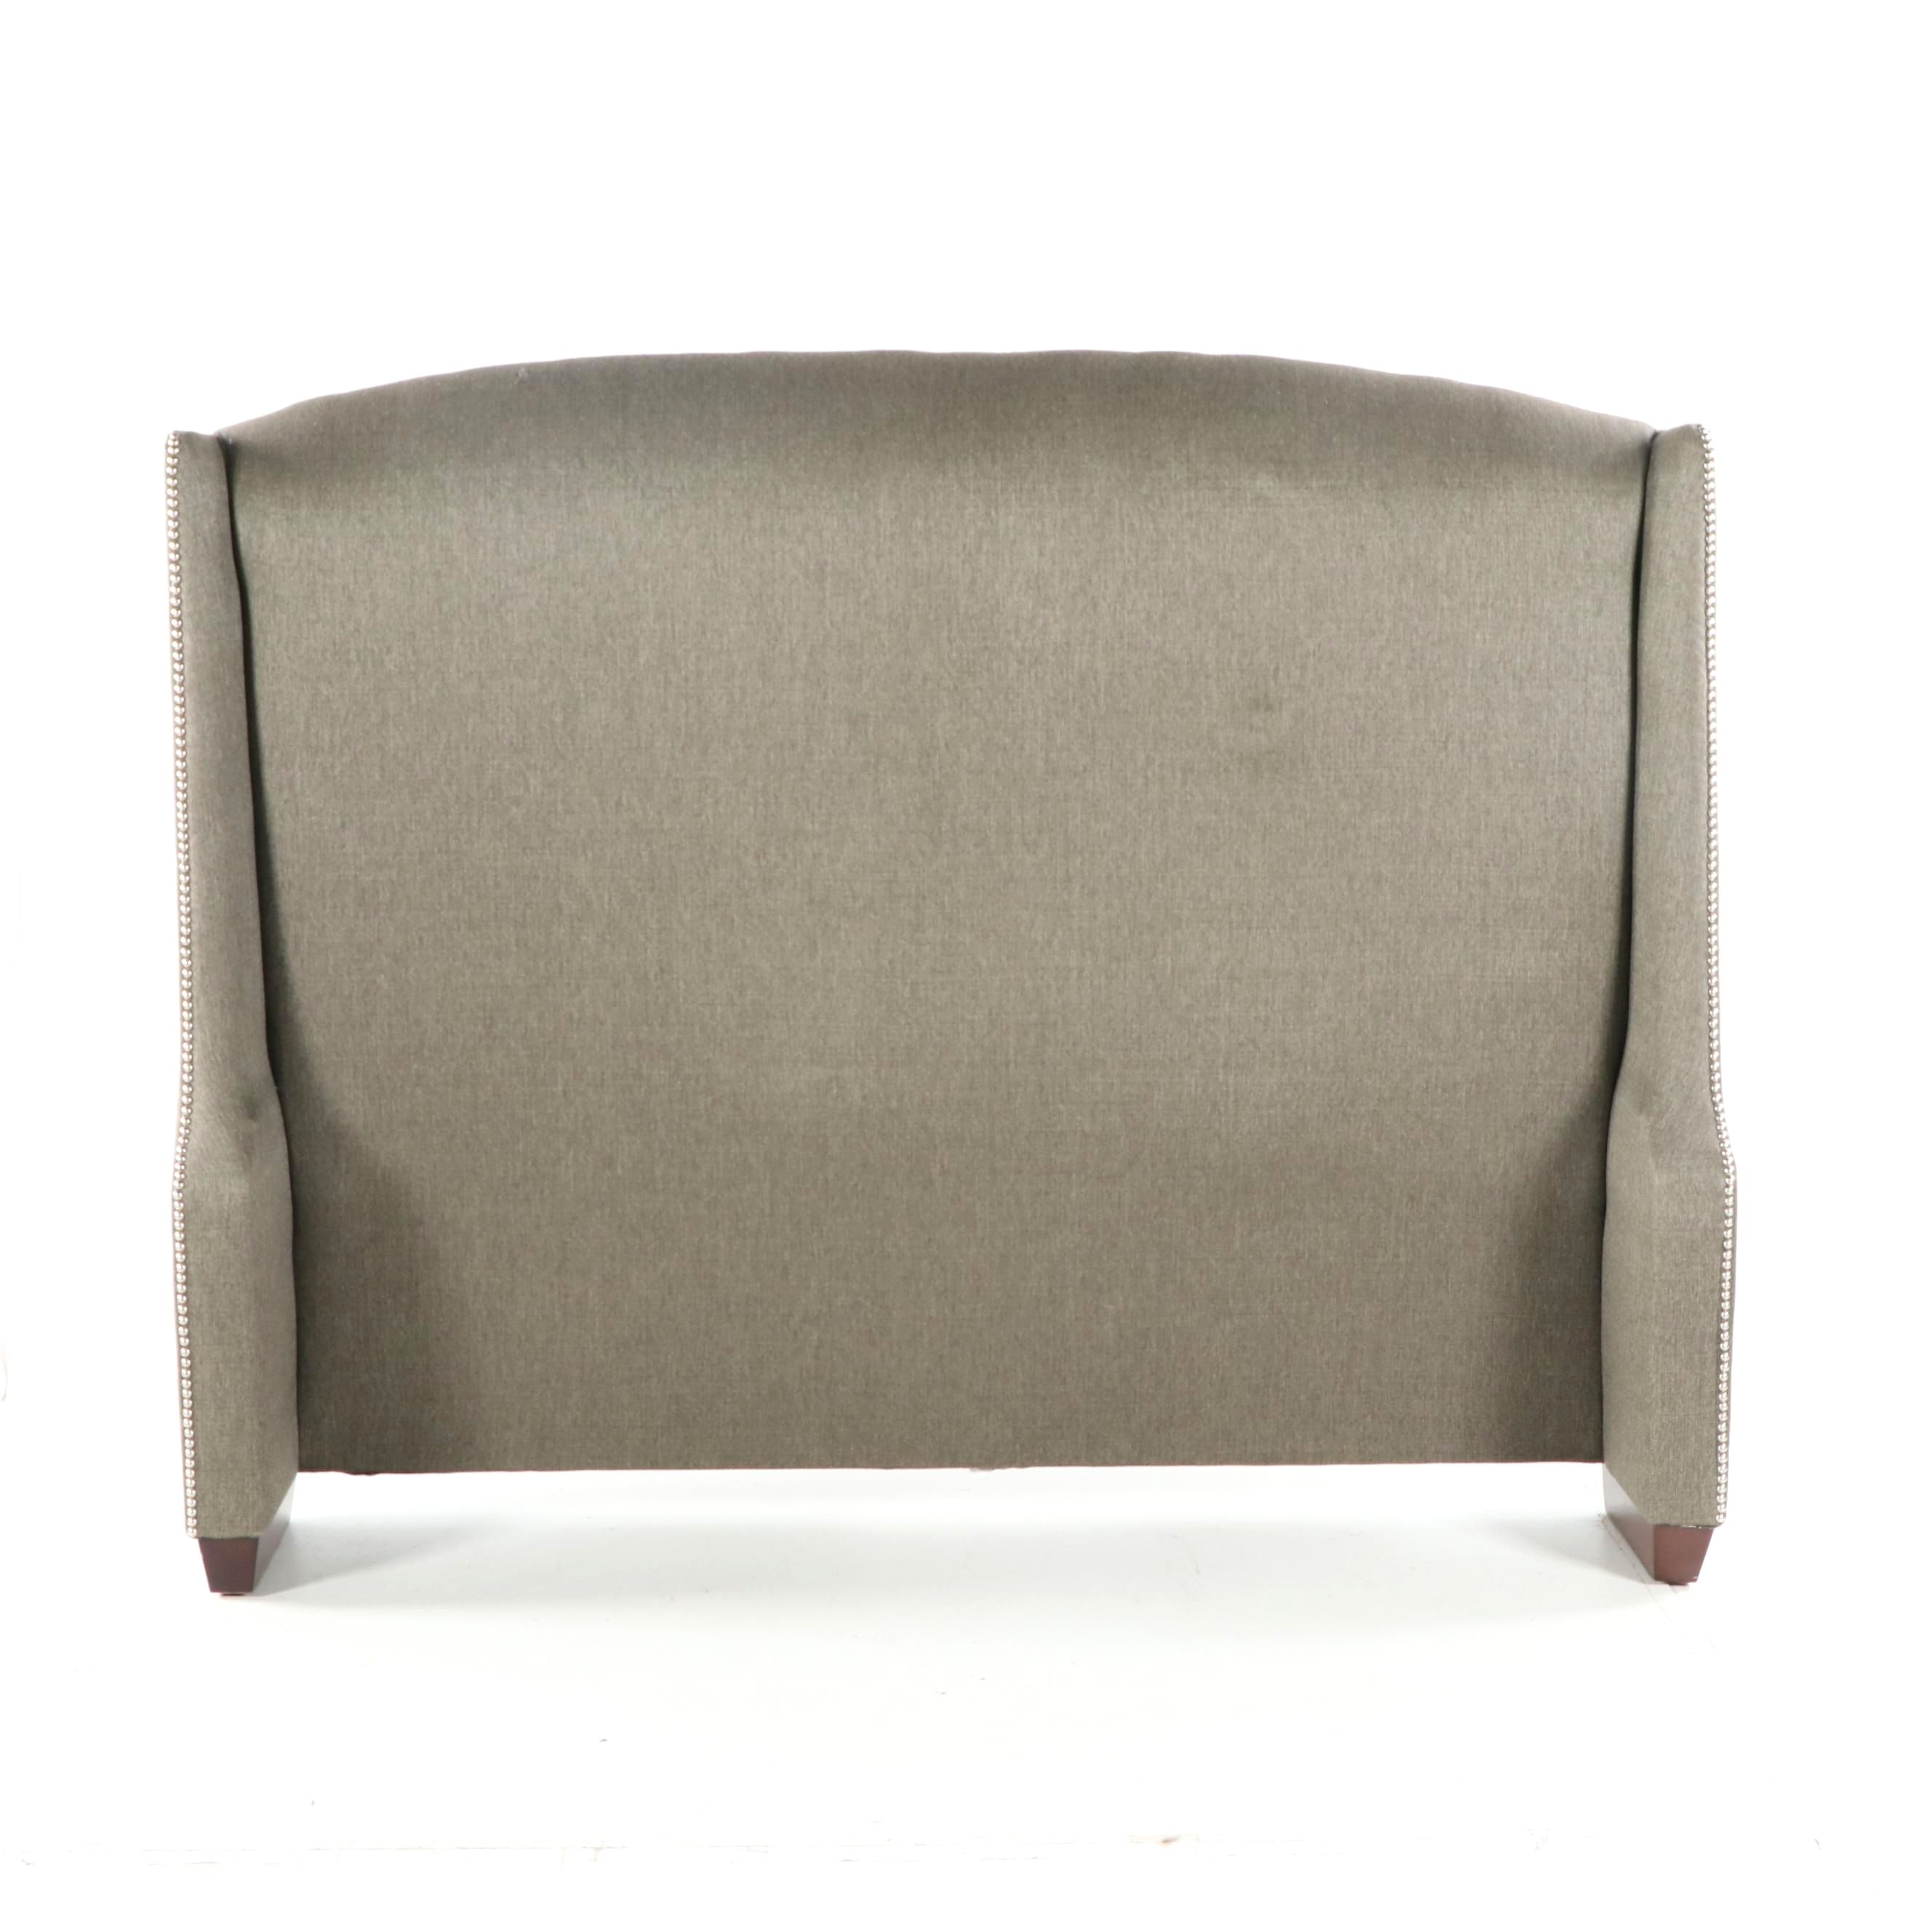 Upholstered Queen Size Wingback Headboard, 21st Century